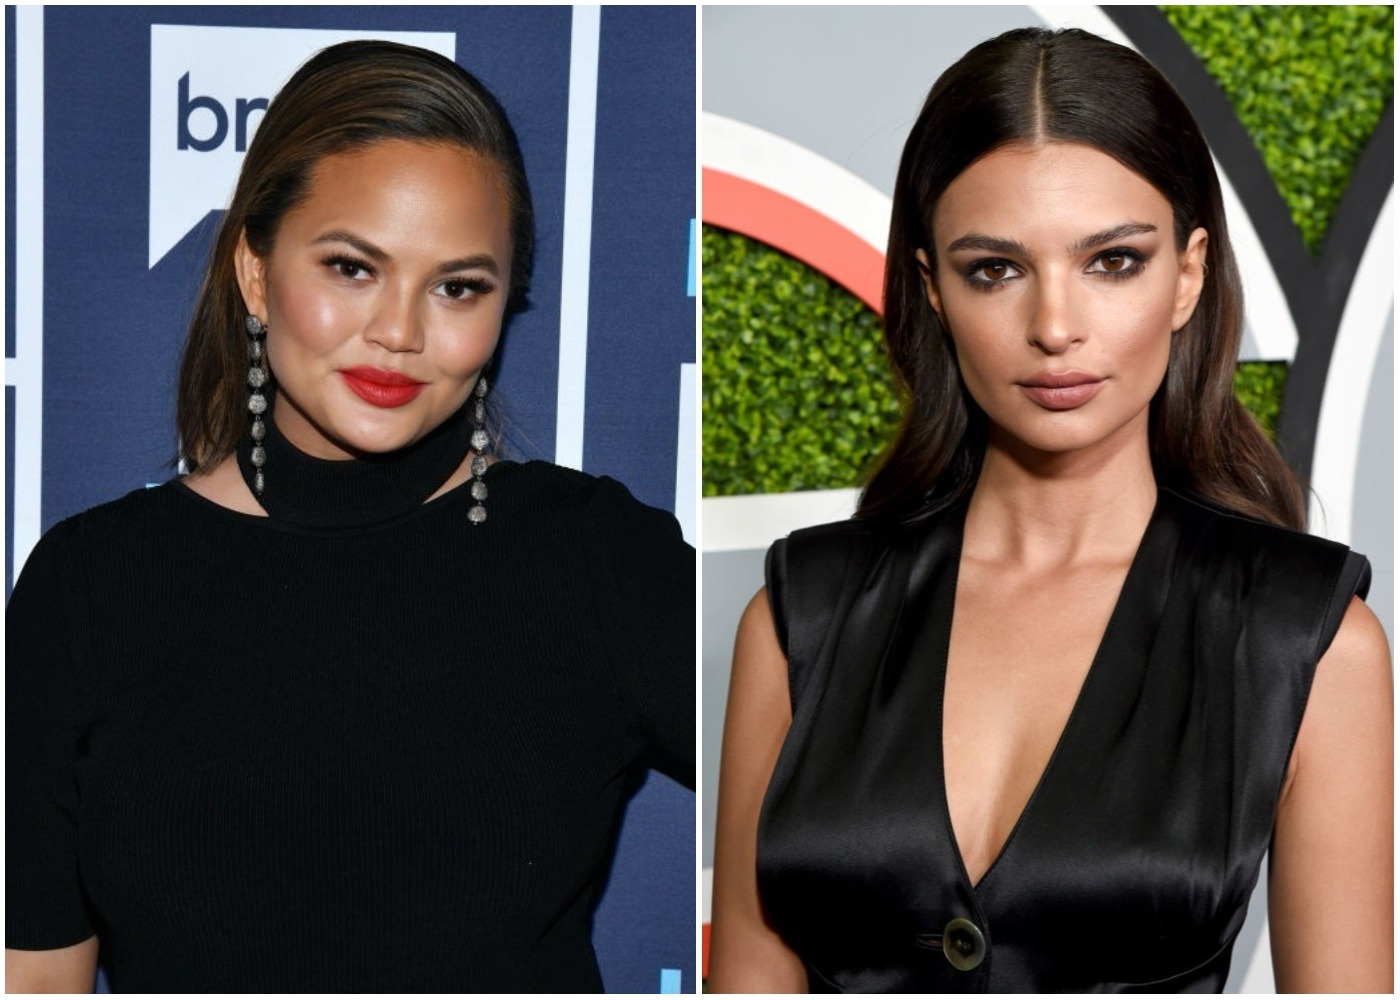 Chrissy Teigen's tweet about not getting invited to Emily Ratajkowski's wedding is perfectly 2018